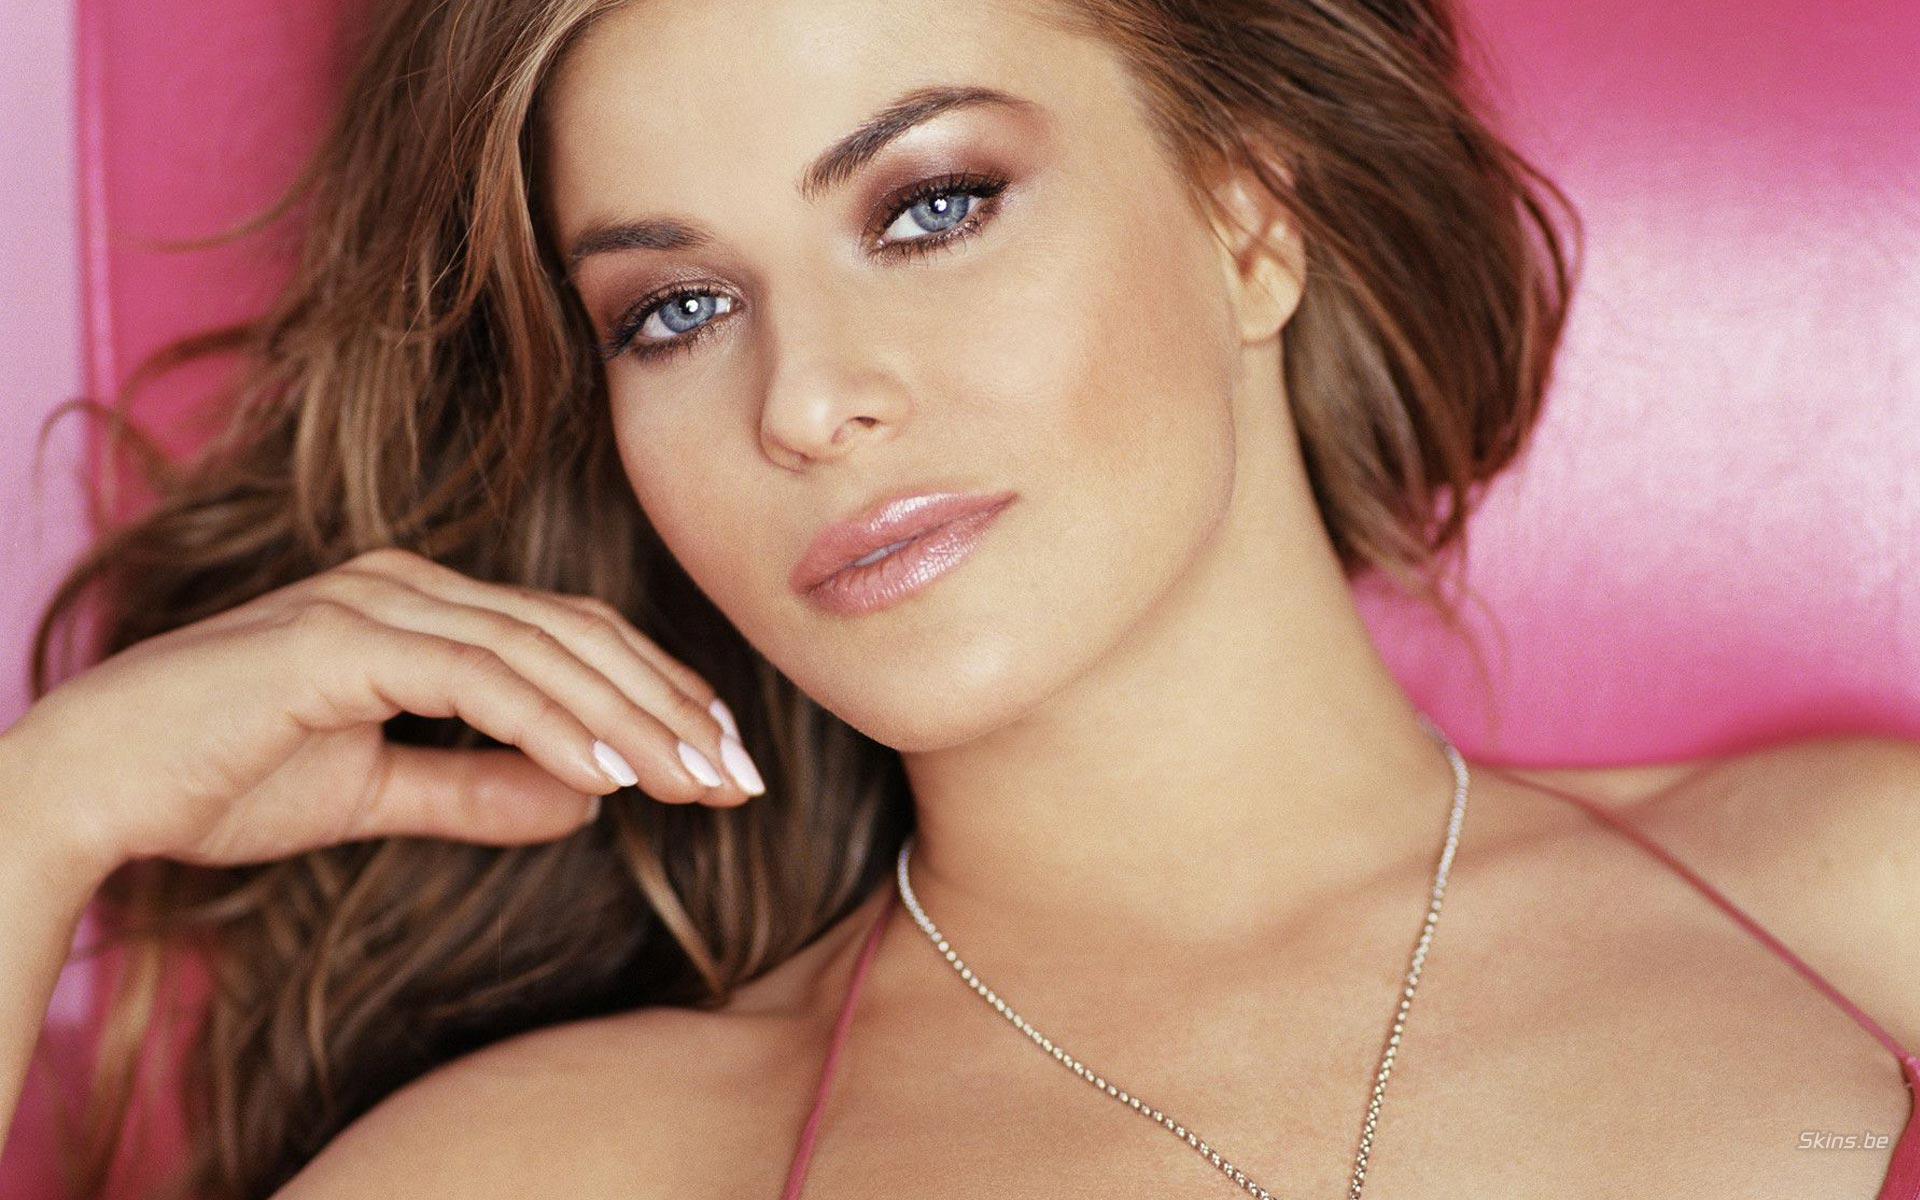 De Carmen Electra wallpaper - 236284